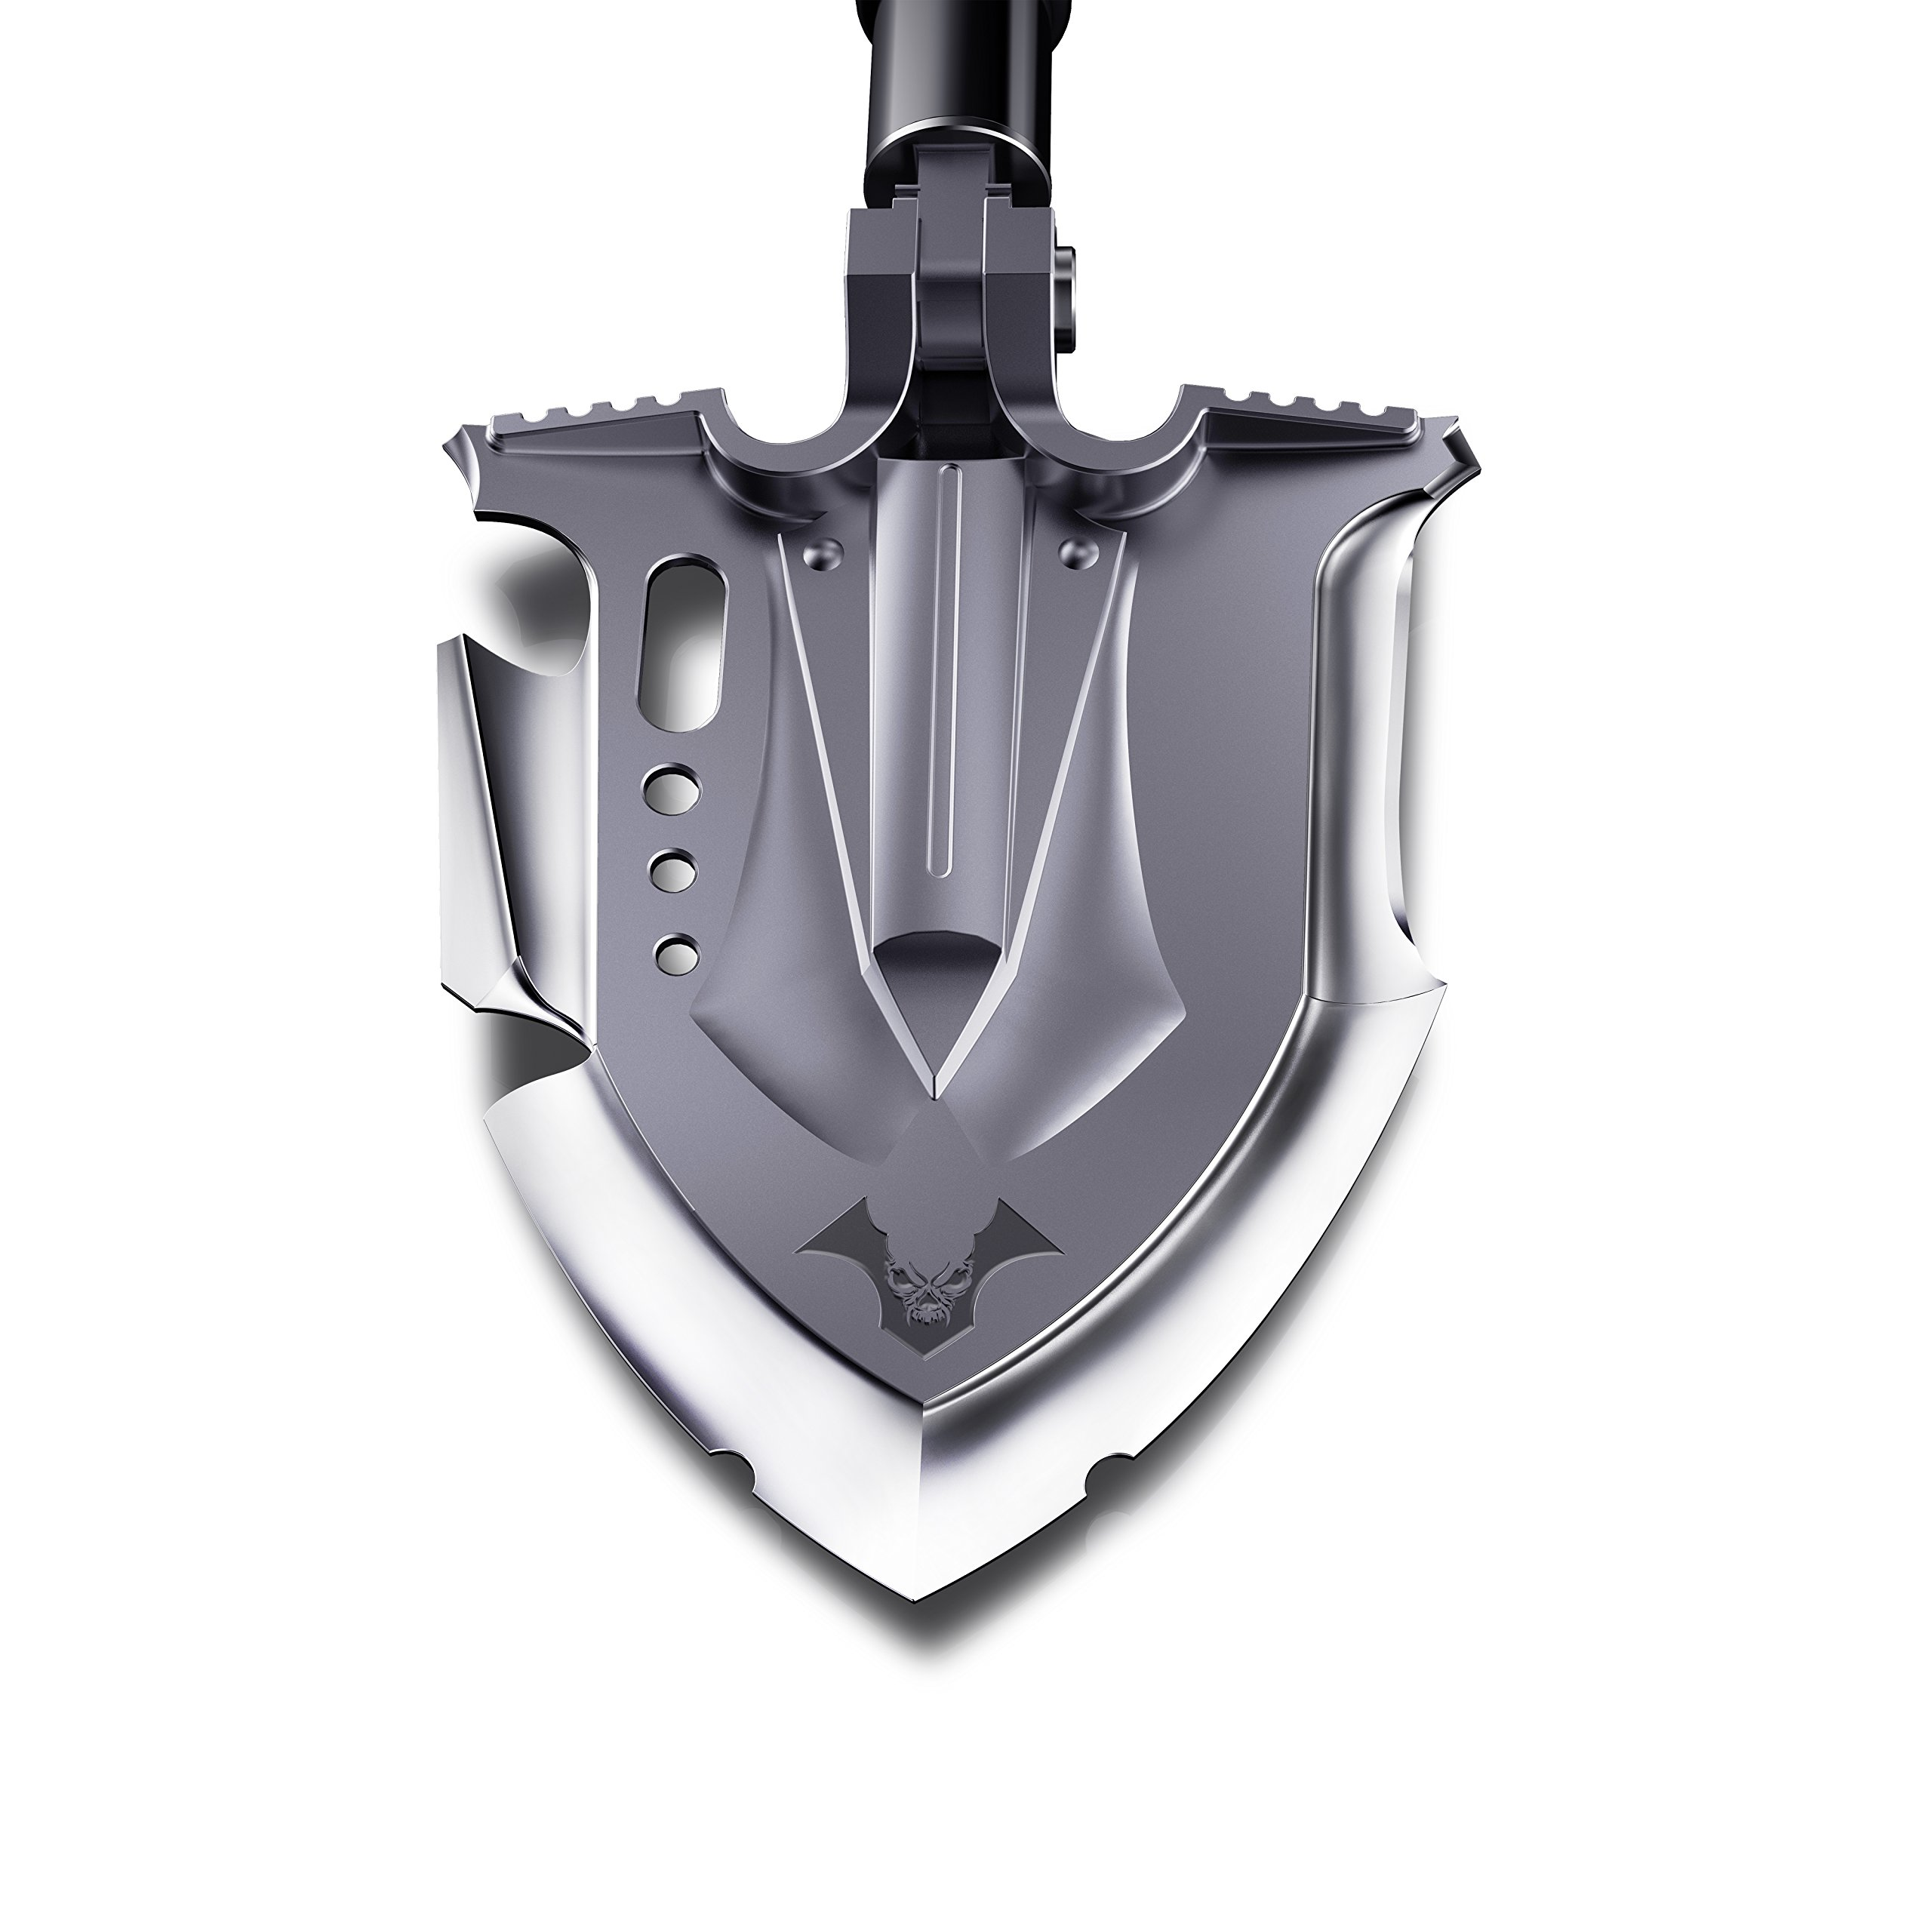 Zune Lotoo Annihilate Tactical Military Folding Multifunction Shovel, Casting Steel, With battle axe and battle bayonet